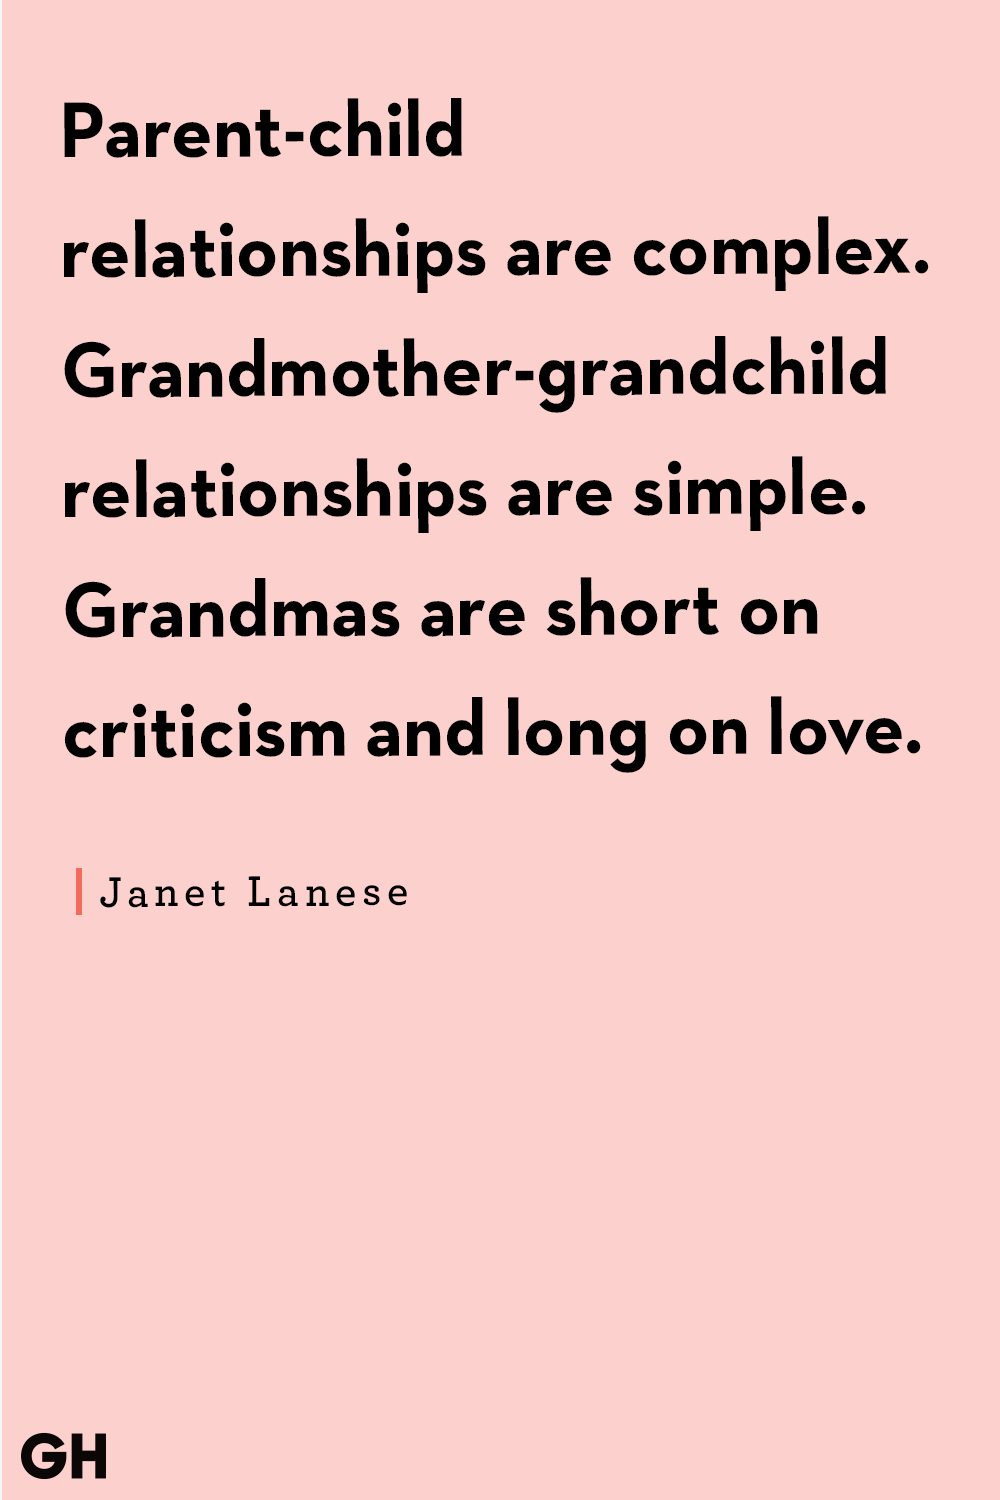 30 Best Grandma Quotes - Fun and Loving Quotes About